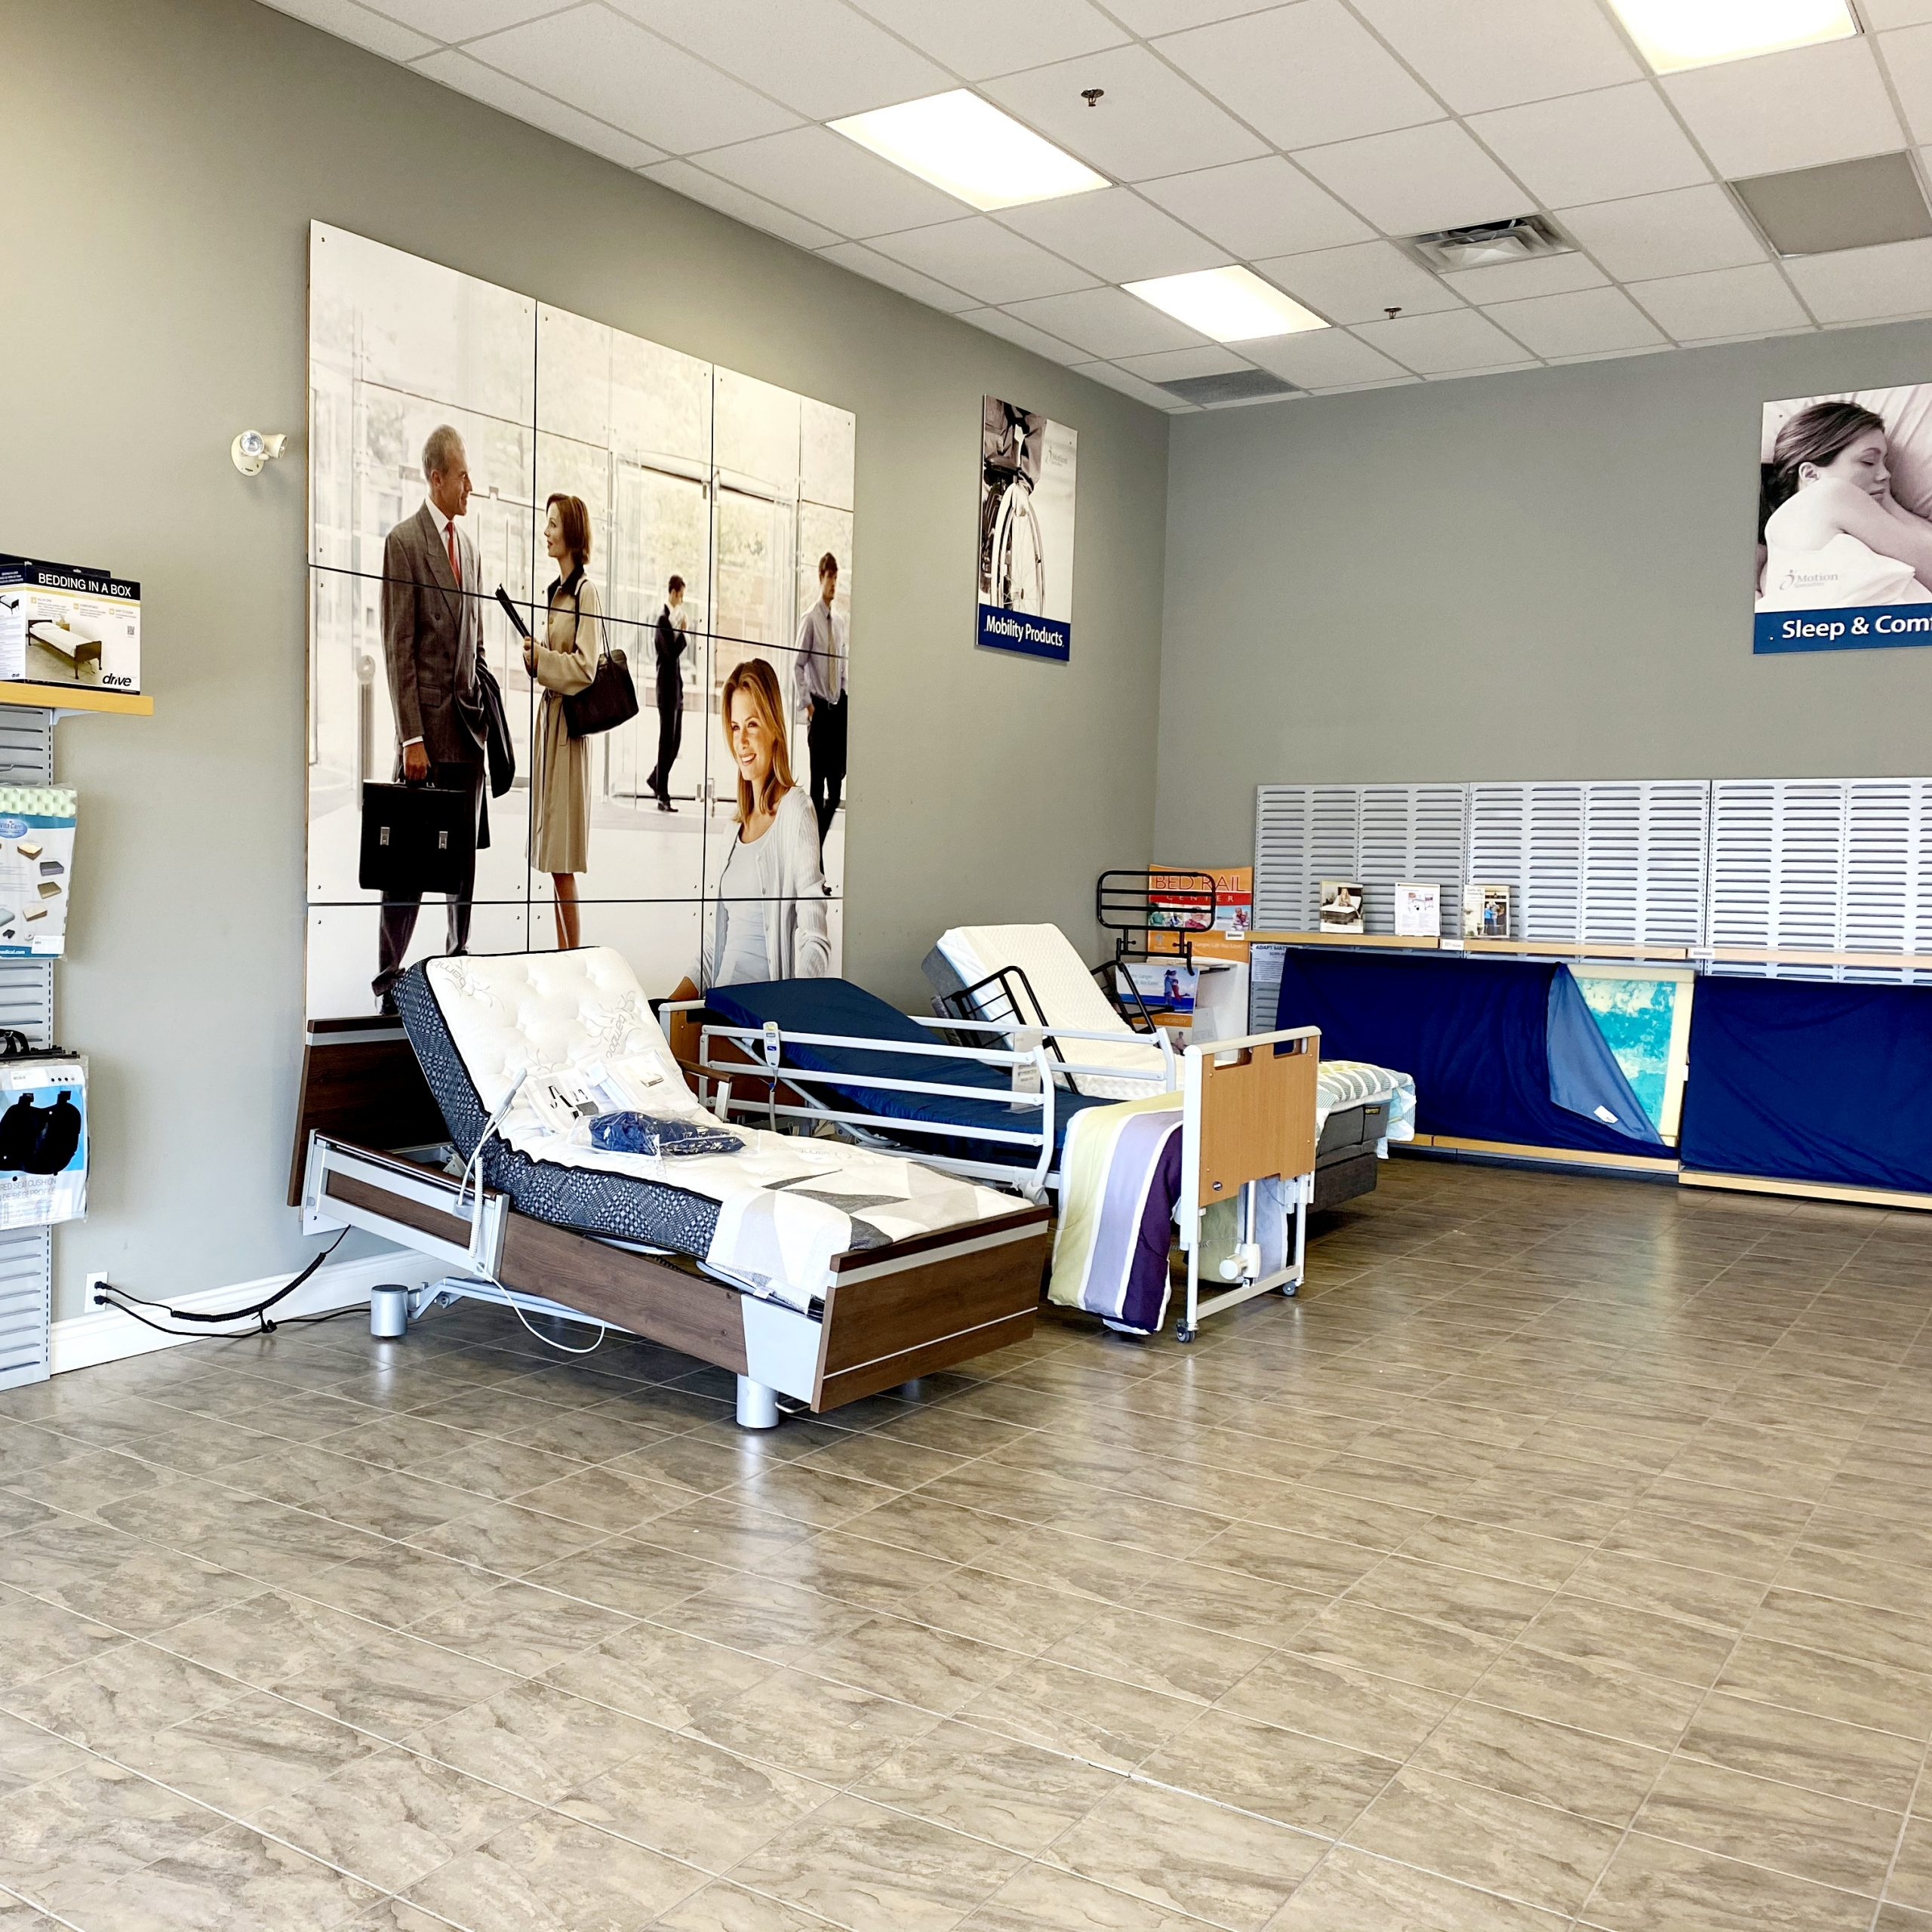 St. Catharines home care bed display in showroom